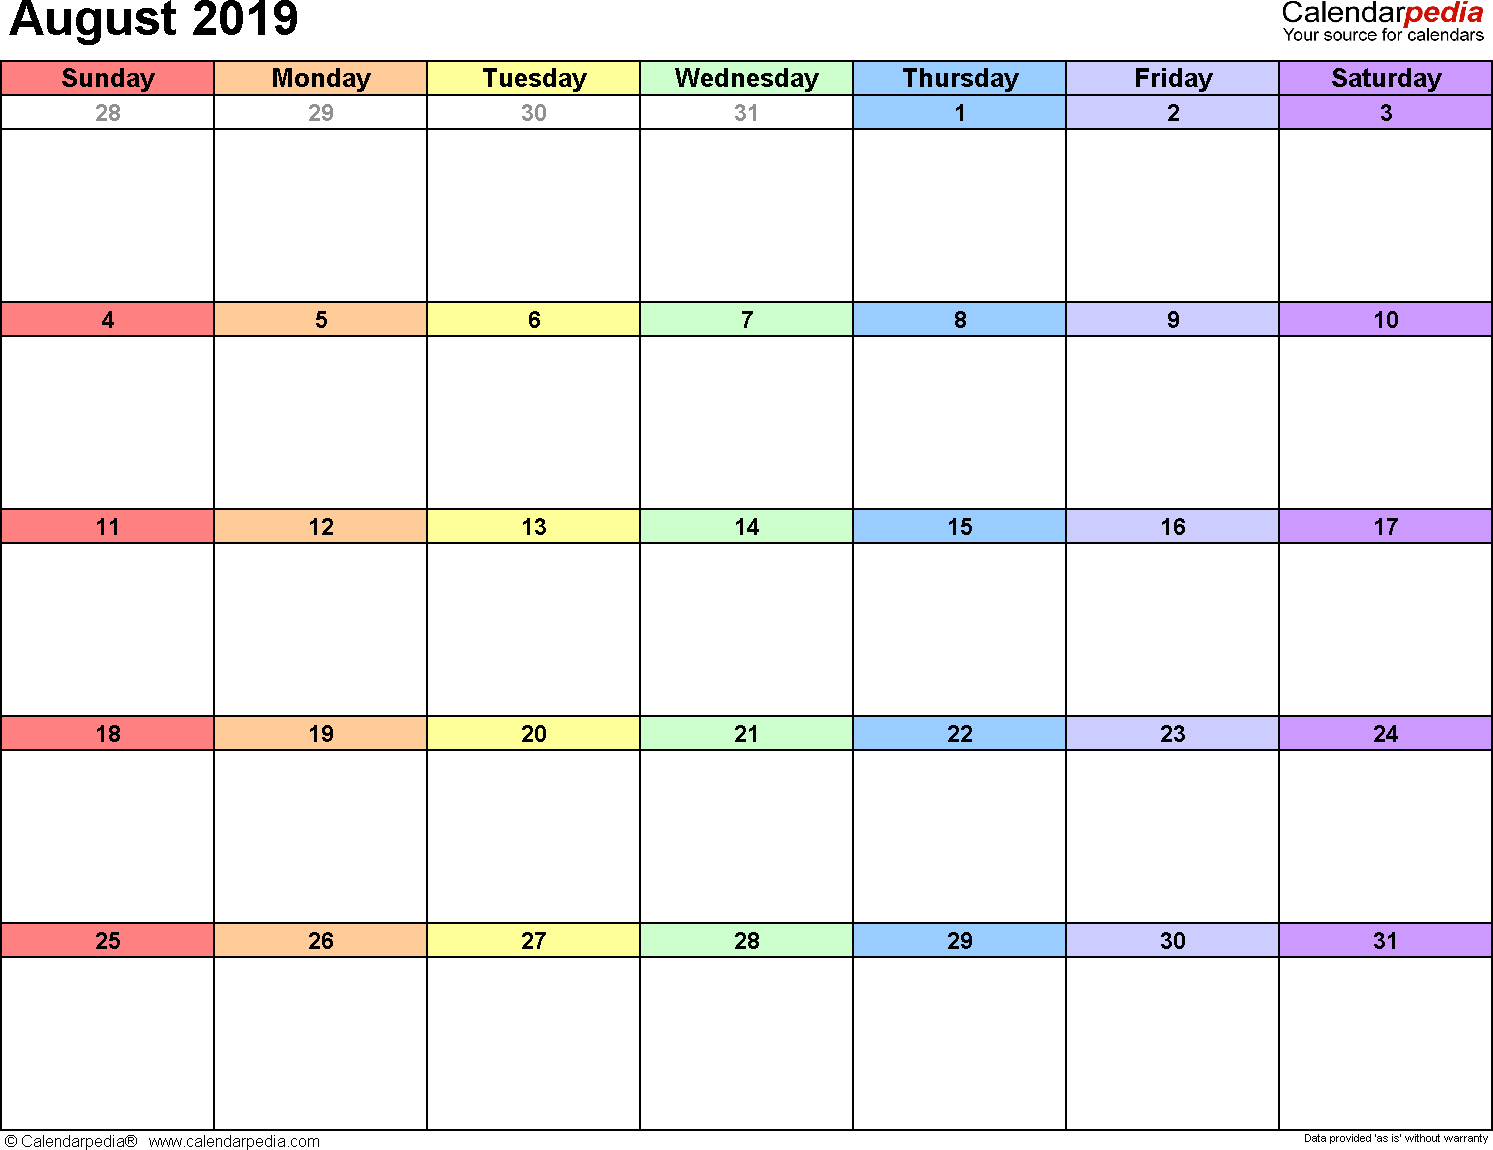 Calendarpedia - Your Source For Calendars for Printable Monthly Calendar Templates August